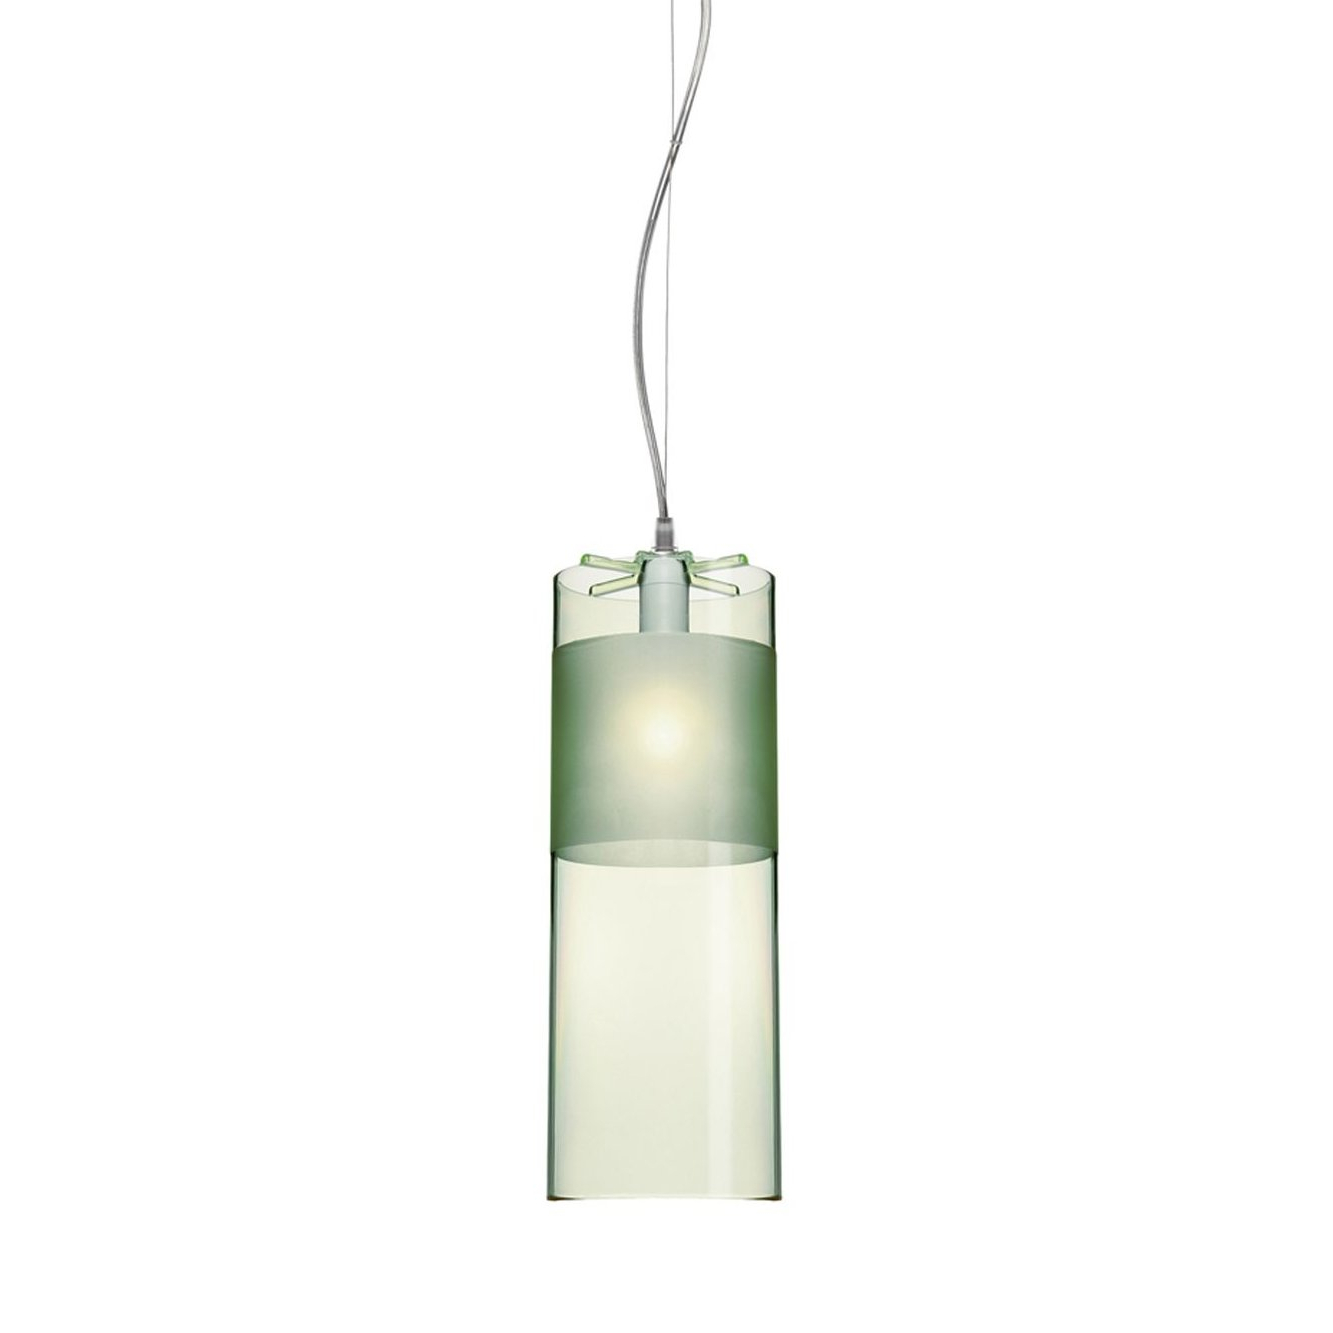 Wadlington 6 Light Single Cylinder Pendants Within Most Recently Released Easy 1 Light Single Cylinder Pendant (View 19 of 20)